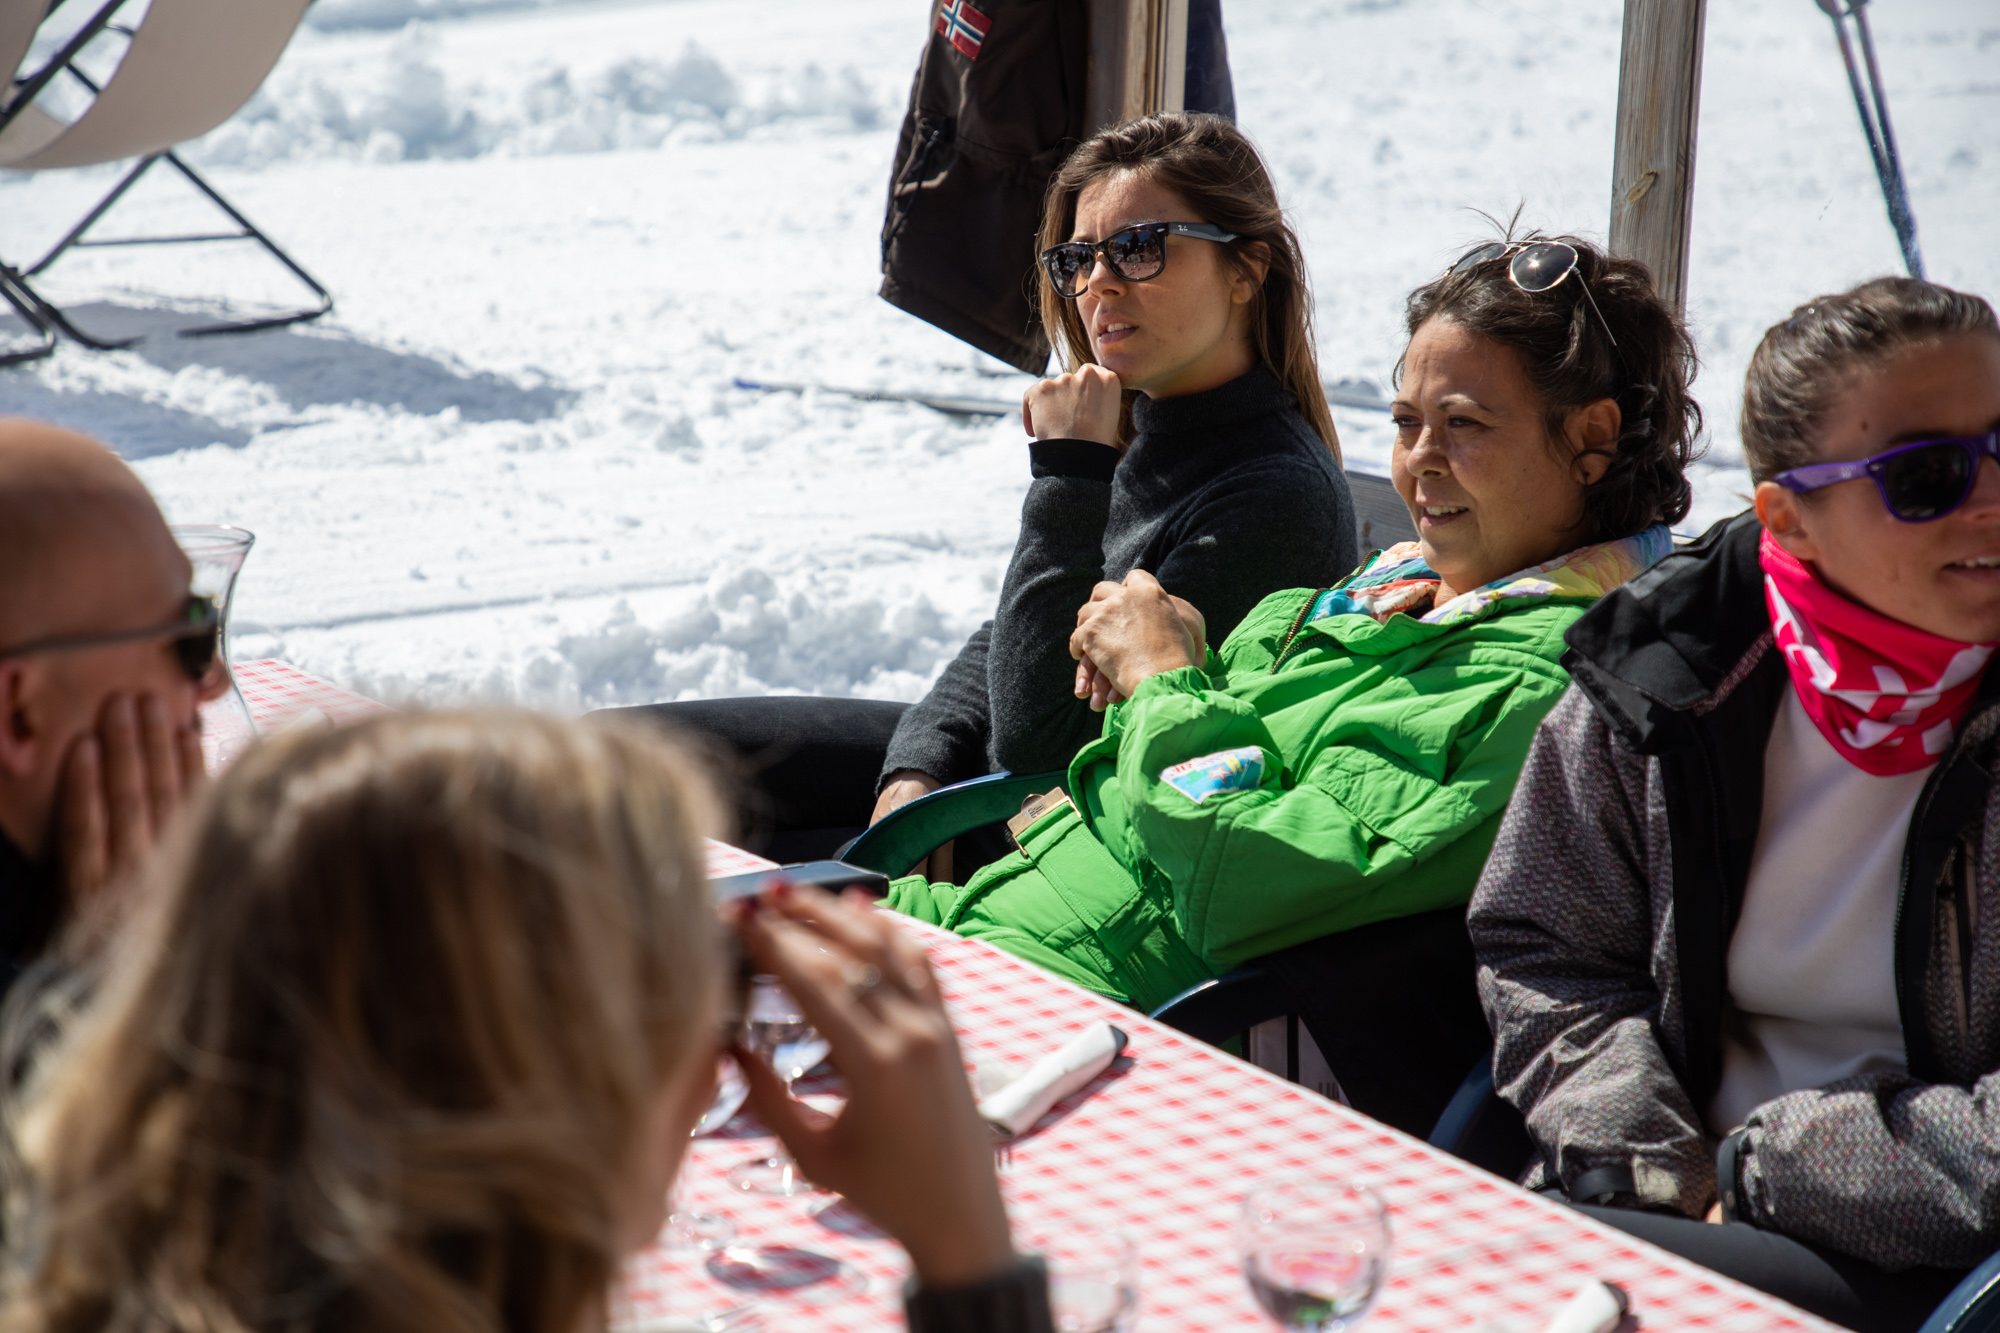 Break_The_Ice_LaClusaz_2019_web-6703.jpg